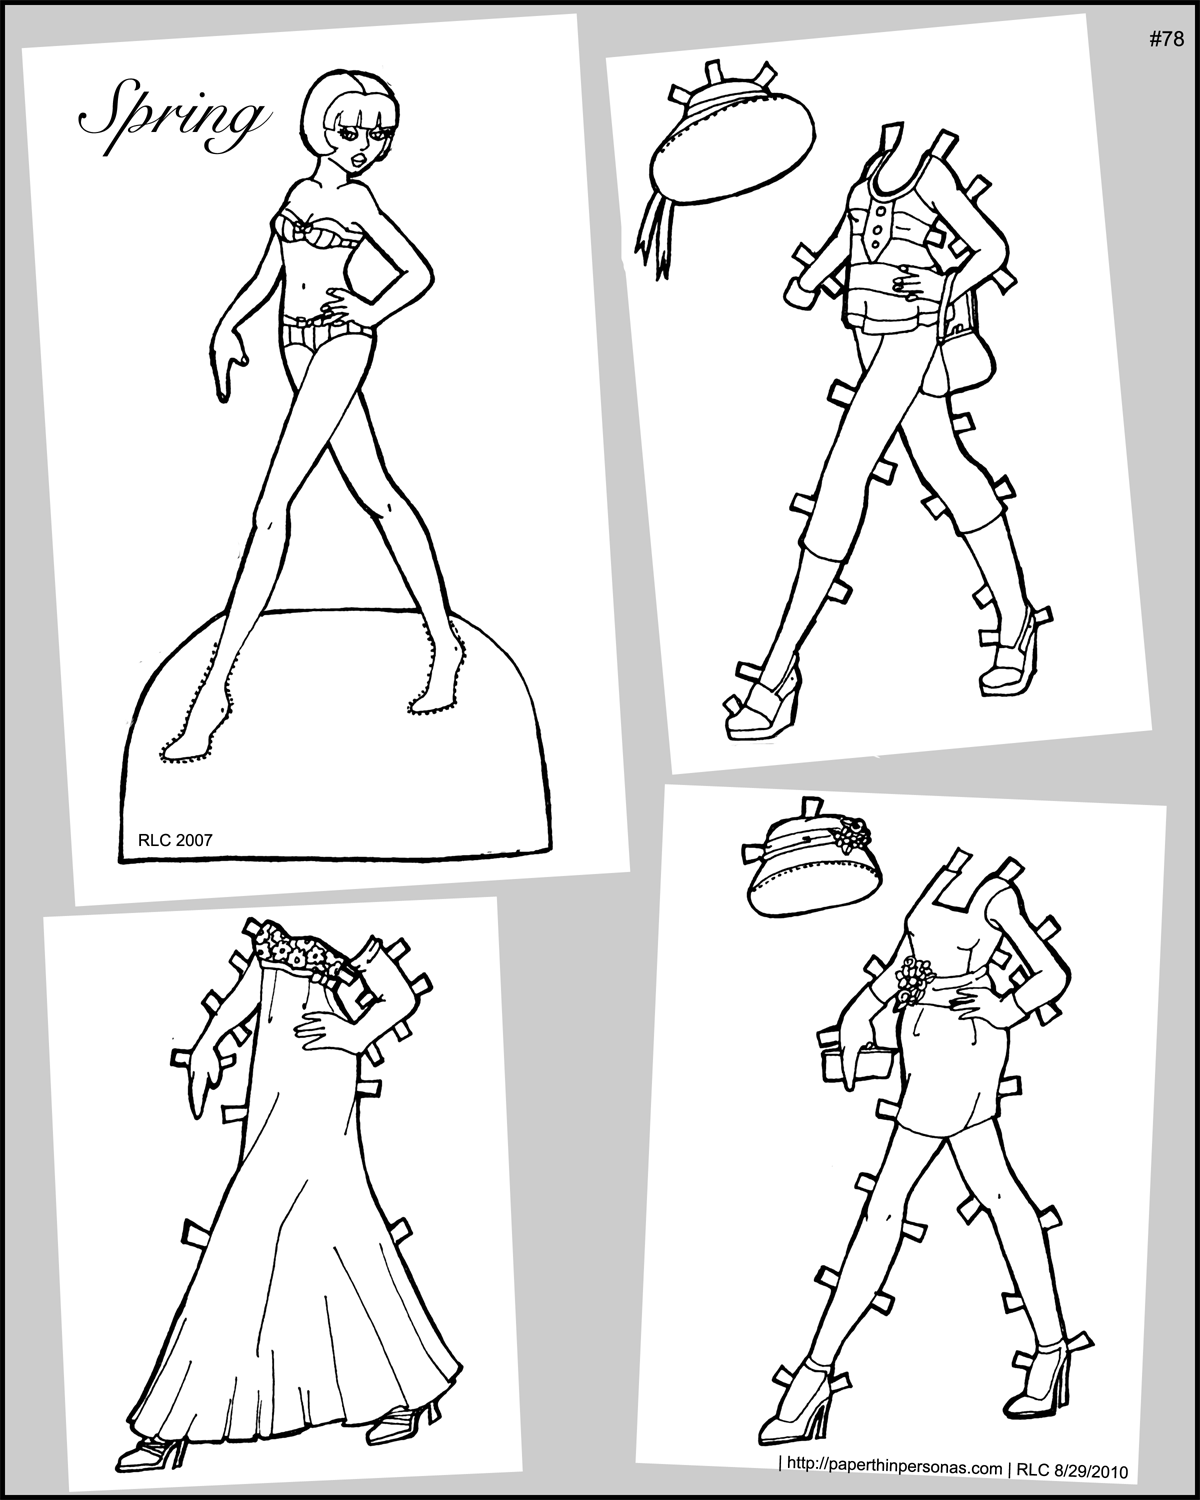 Thumbnail of a printable paper doll wearing contemporary spring fashions